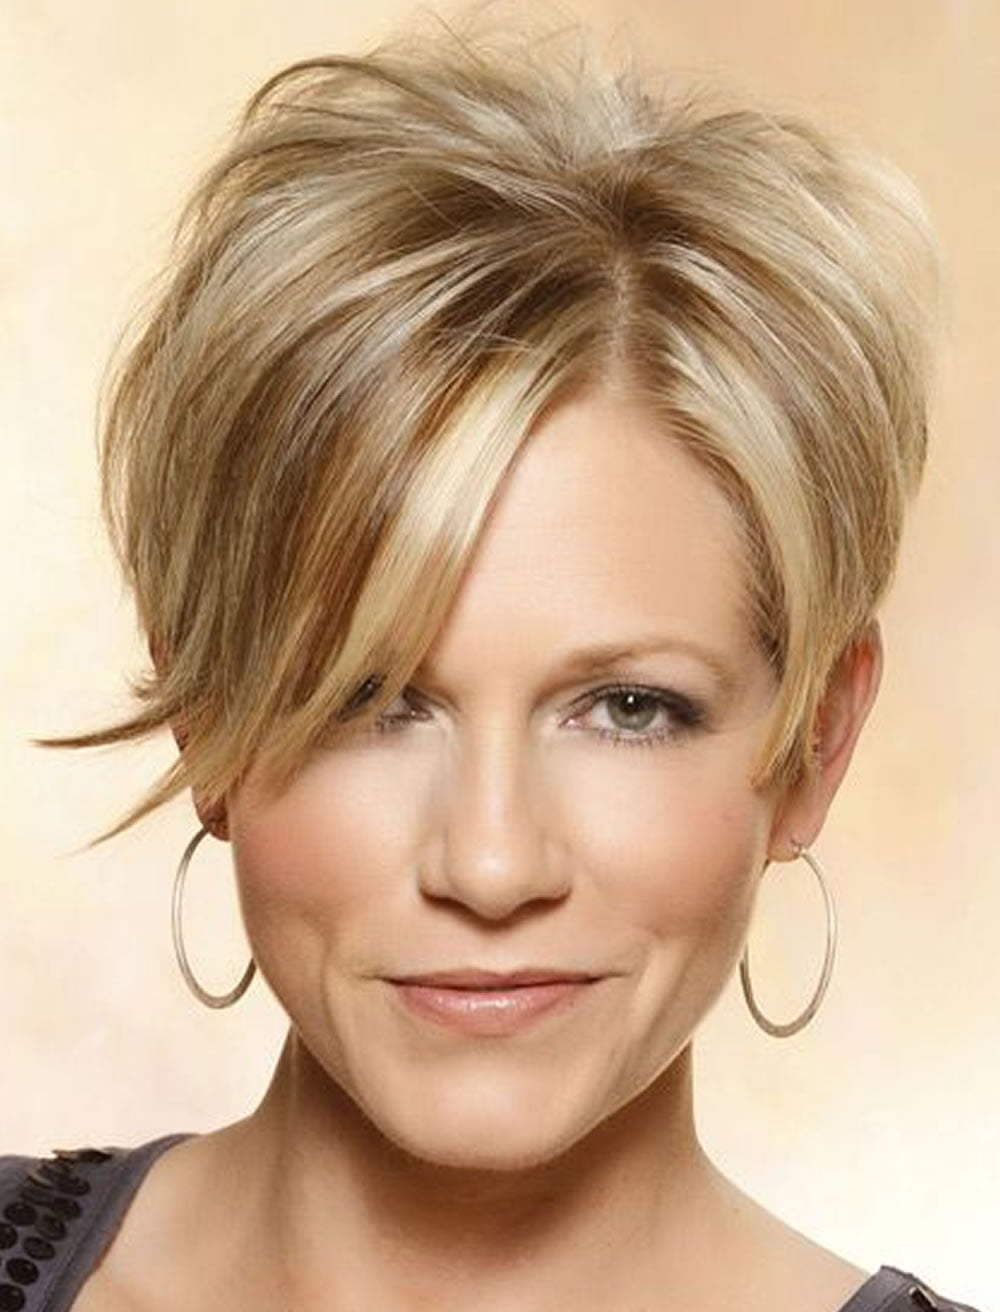 Trendy Hairstyles 2014: The Best Short Haircuts That Are The Most Trendy For Women